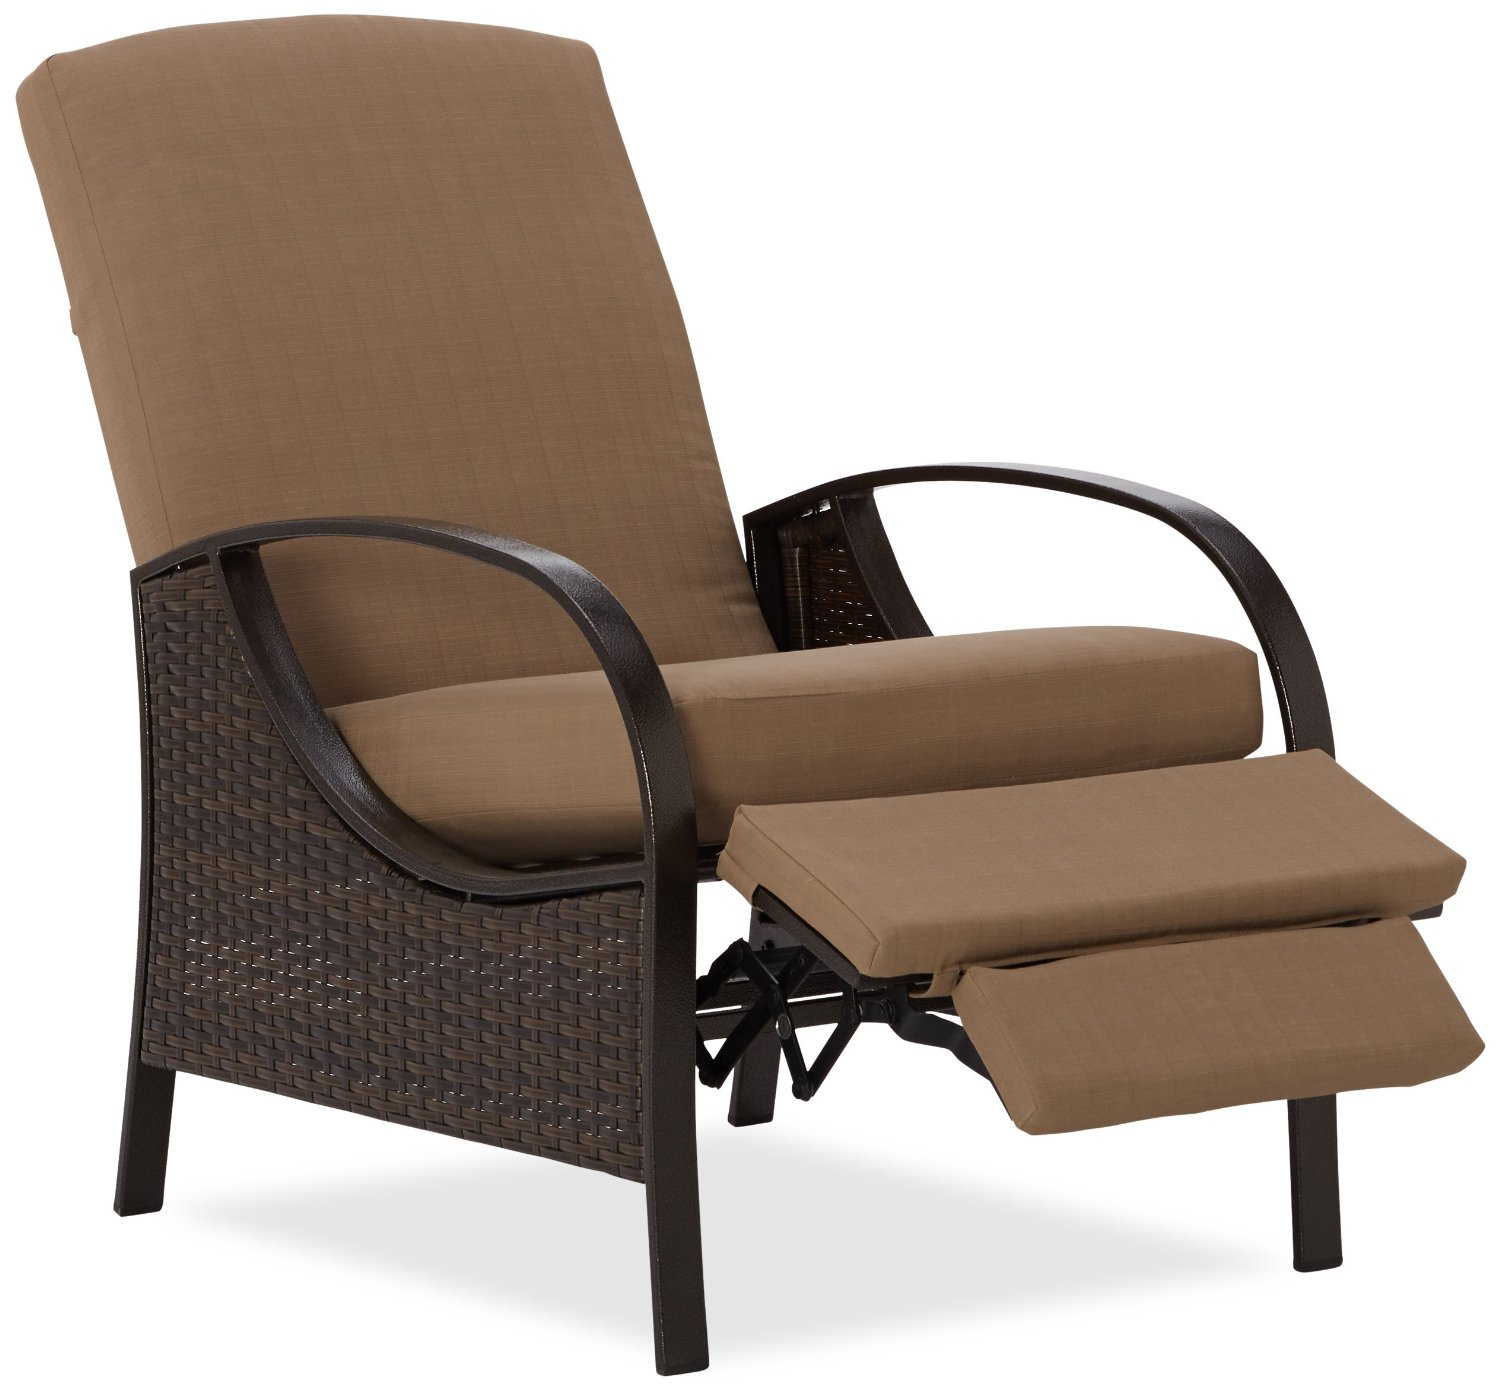 Elegant Amazon.com : Strathwood All-Weather Wicker Deep Seating Outdoor Recliner :  Patio, Lawn garden furniture recliners